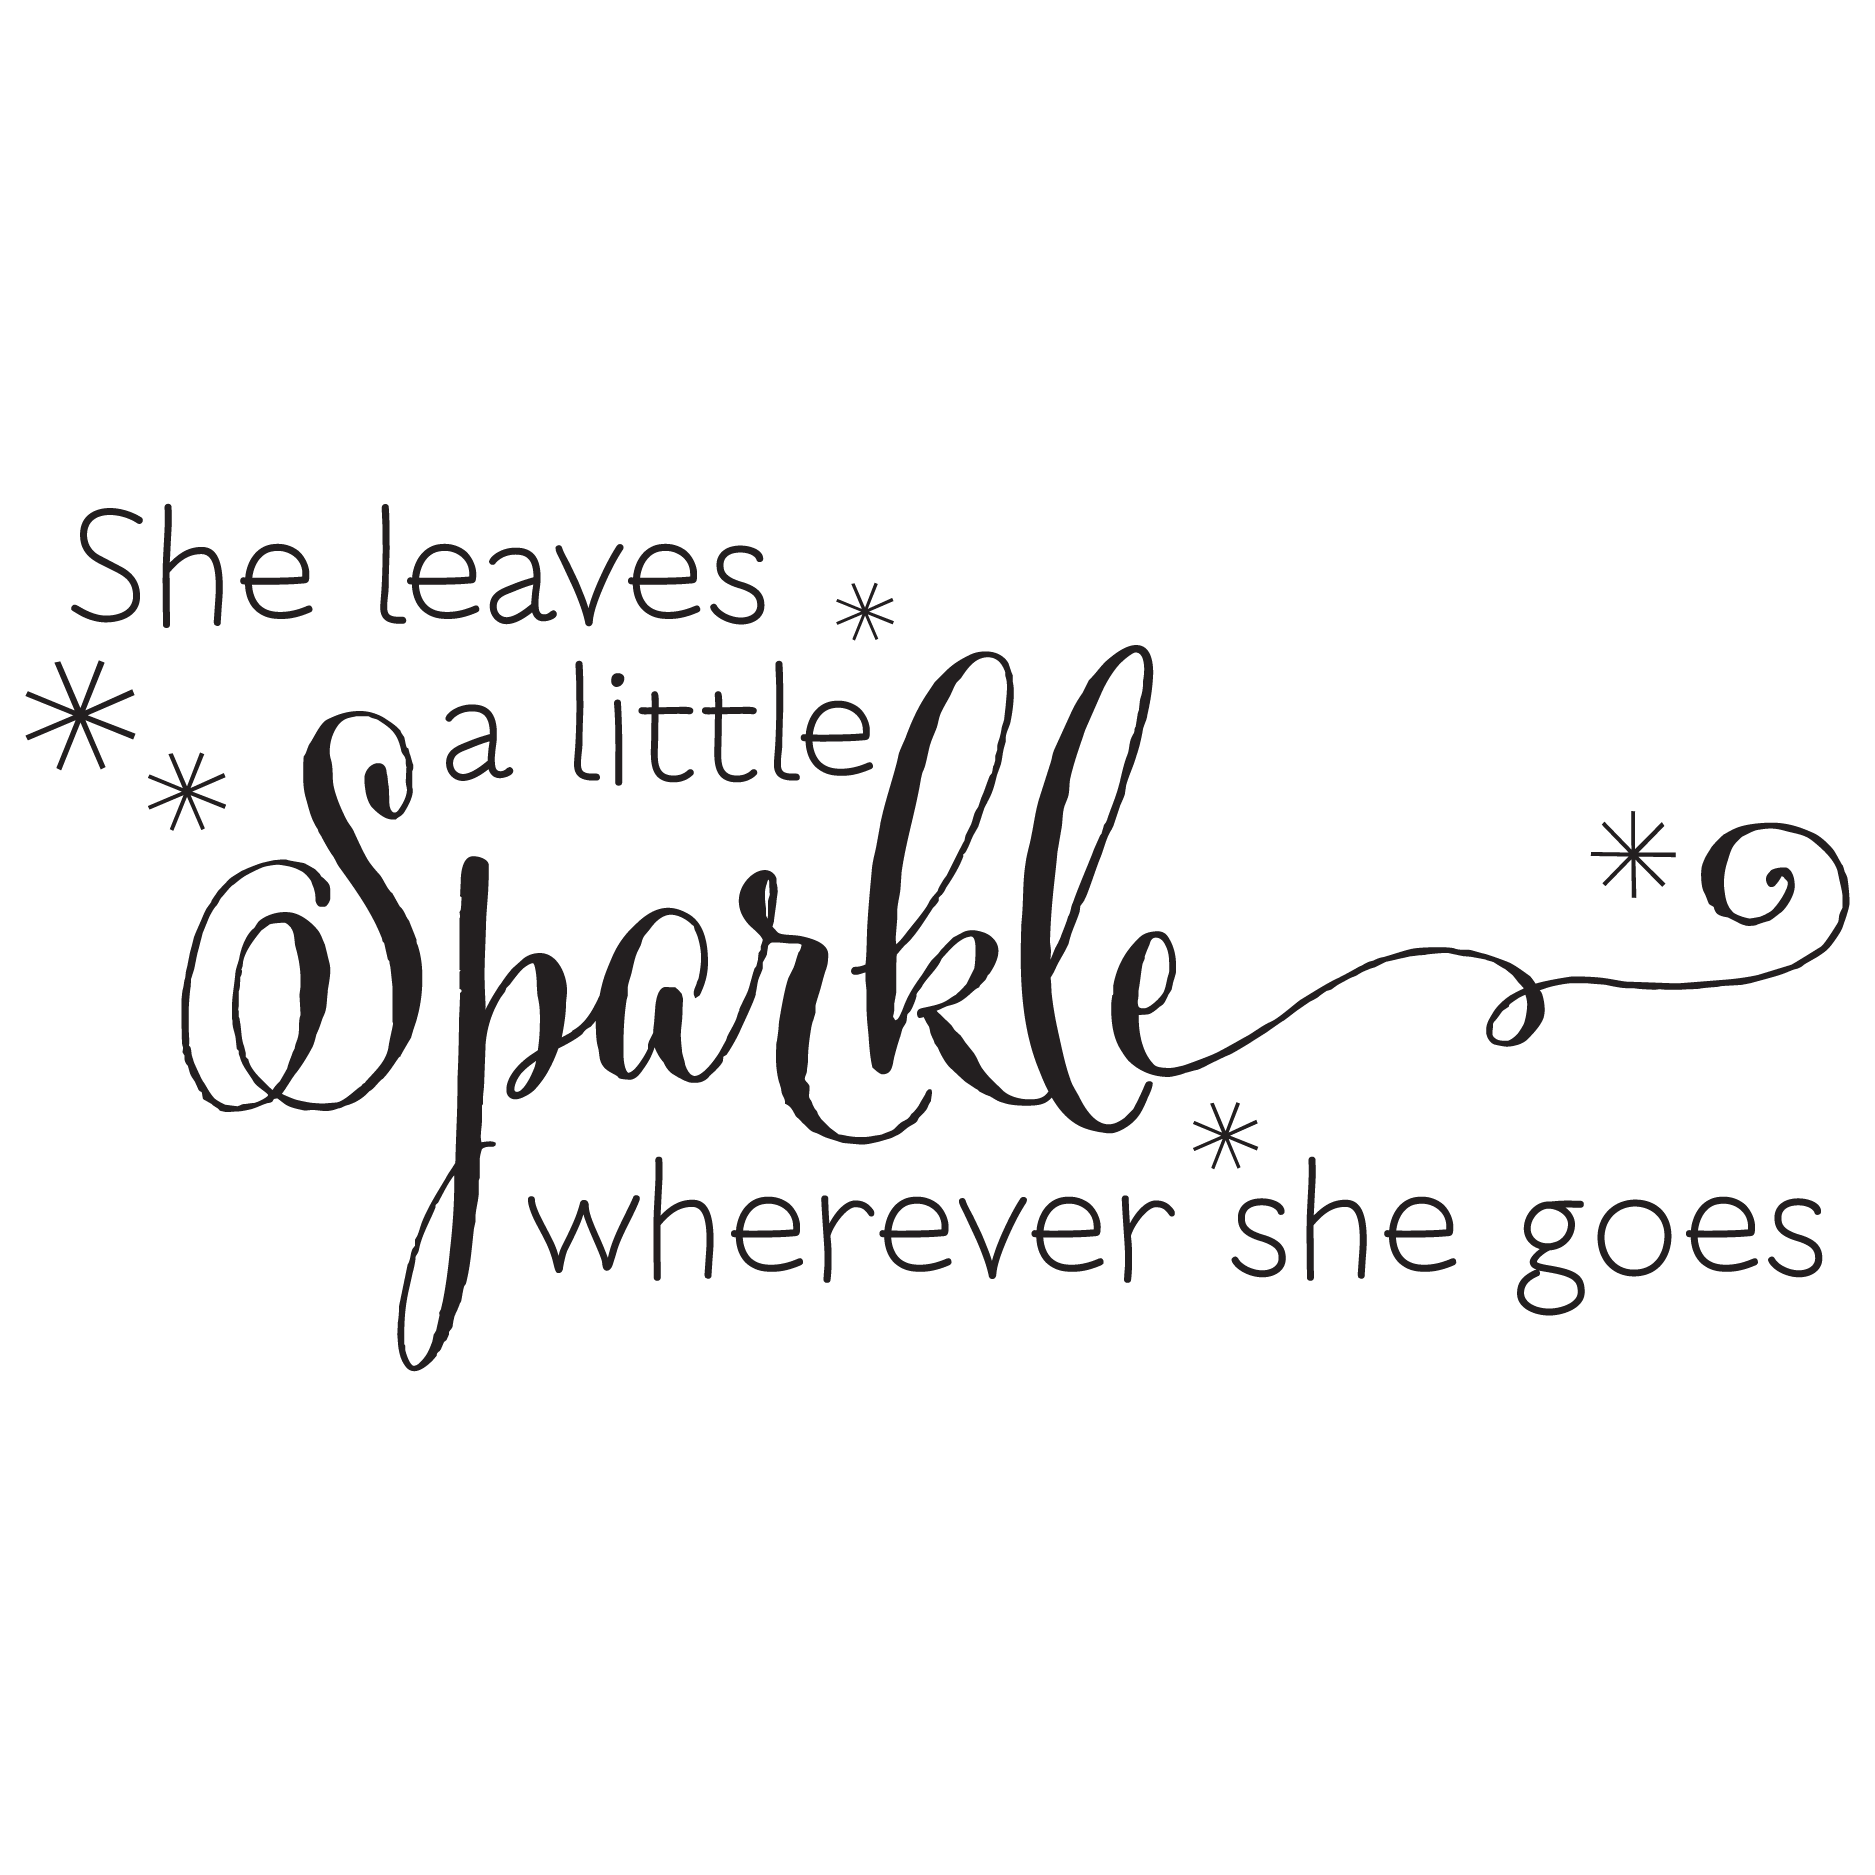 """photo about She Leaves a Little Sparkle Wherever She Goes Free Printable identify She Leaves A Sparkle Wall Quotesâ""""¢ Decal"""